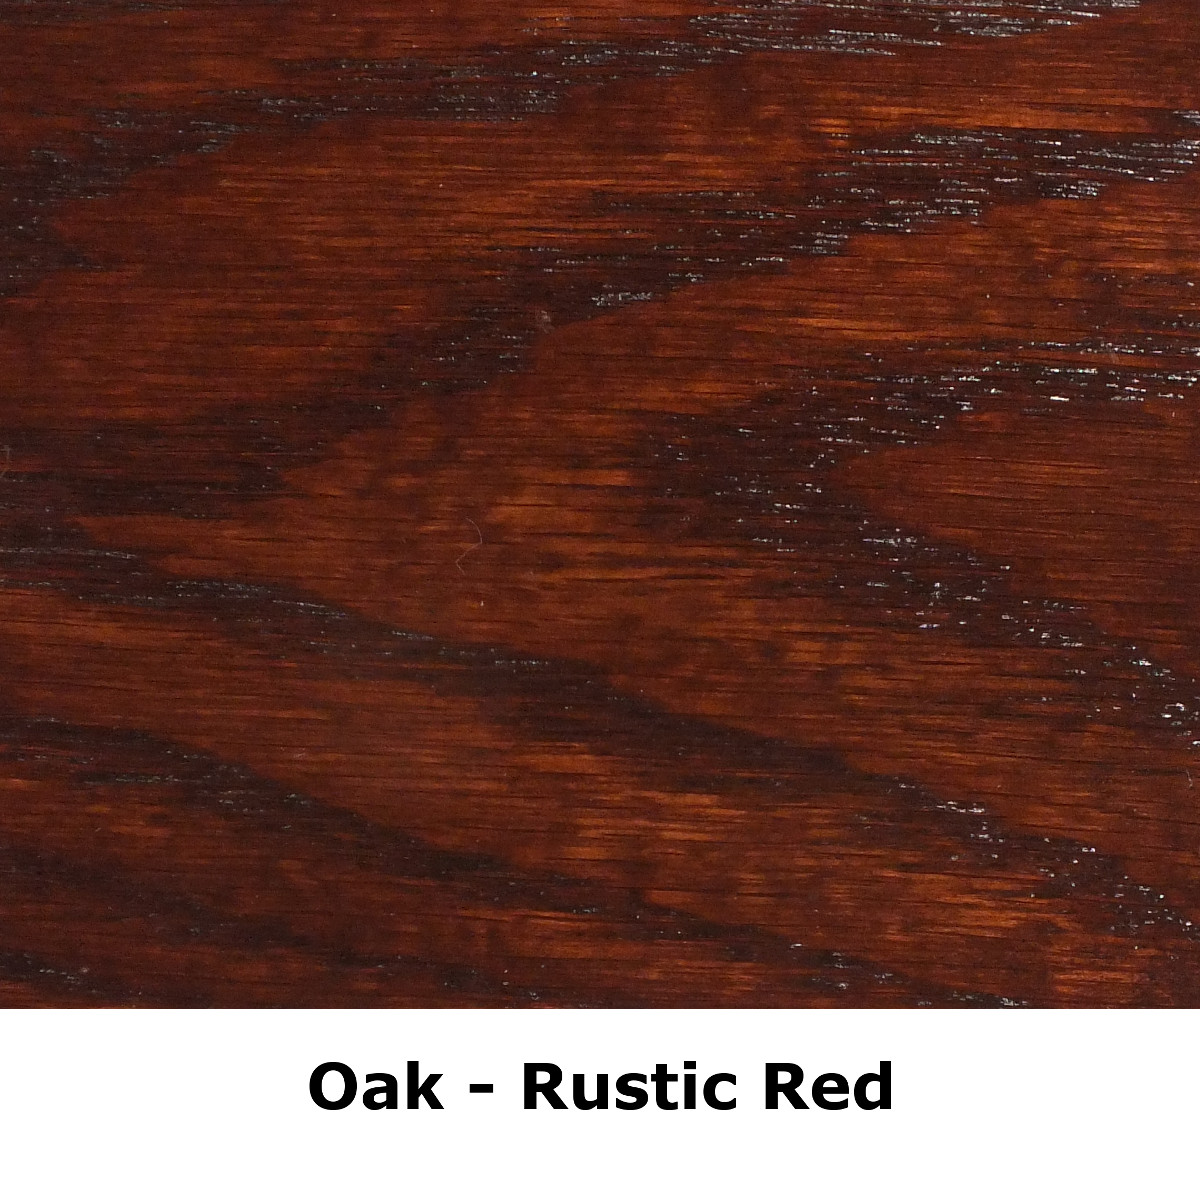 sq oak rust red.jpeg